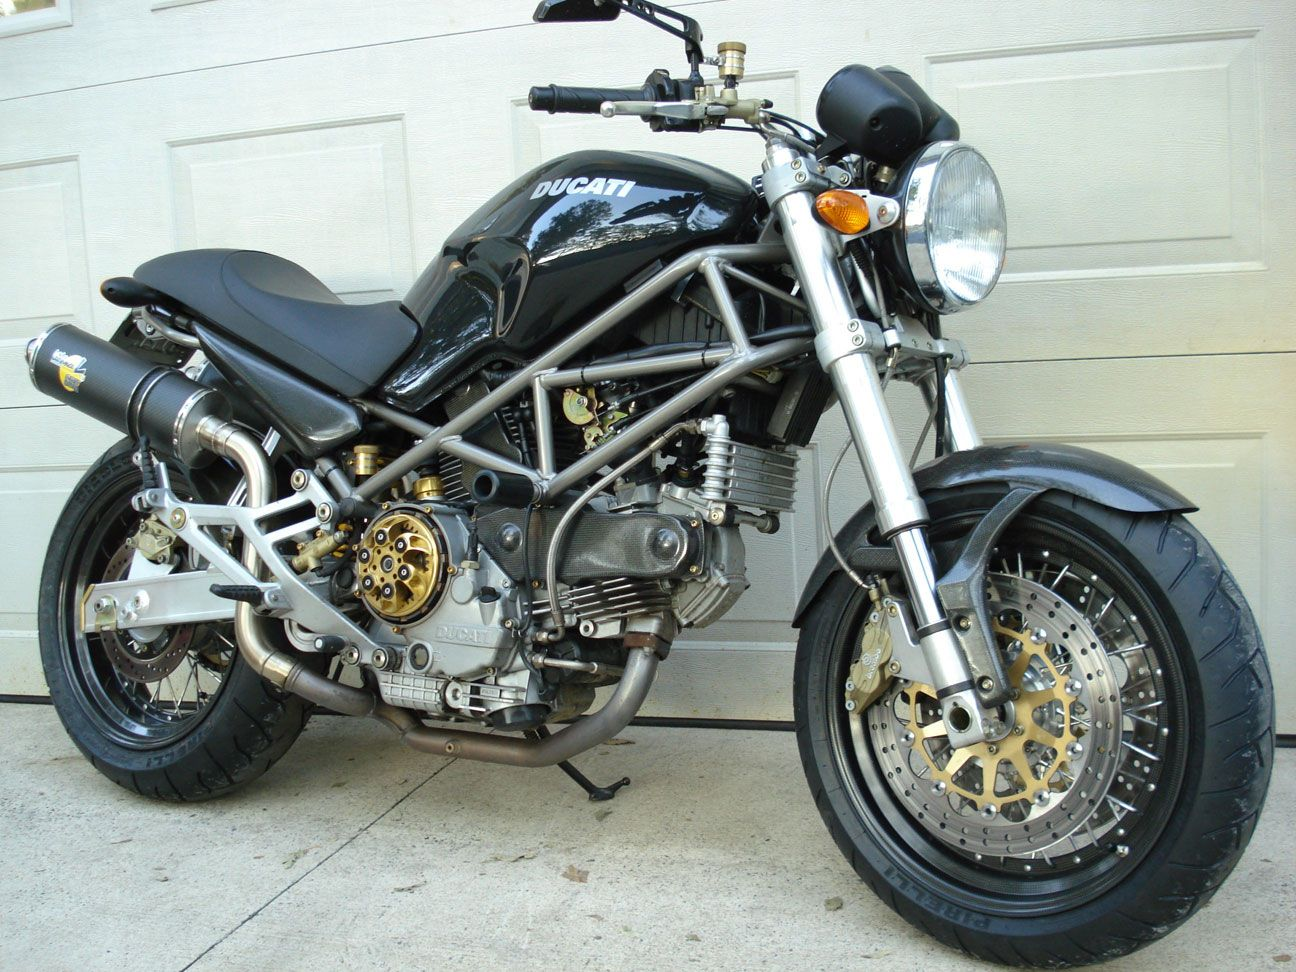 Older Generation Monster With Carbon Wire Spoke Wheels Ducati Monster Monster 696 Monster